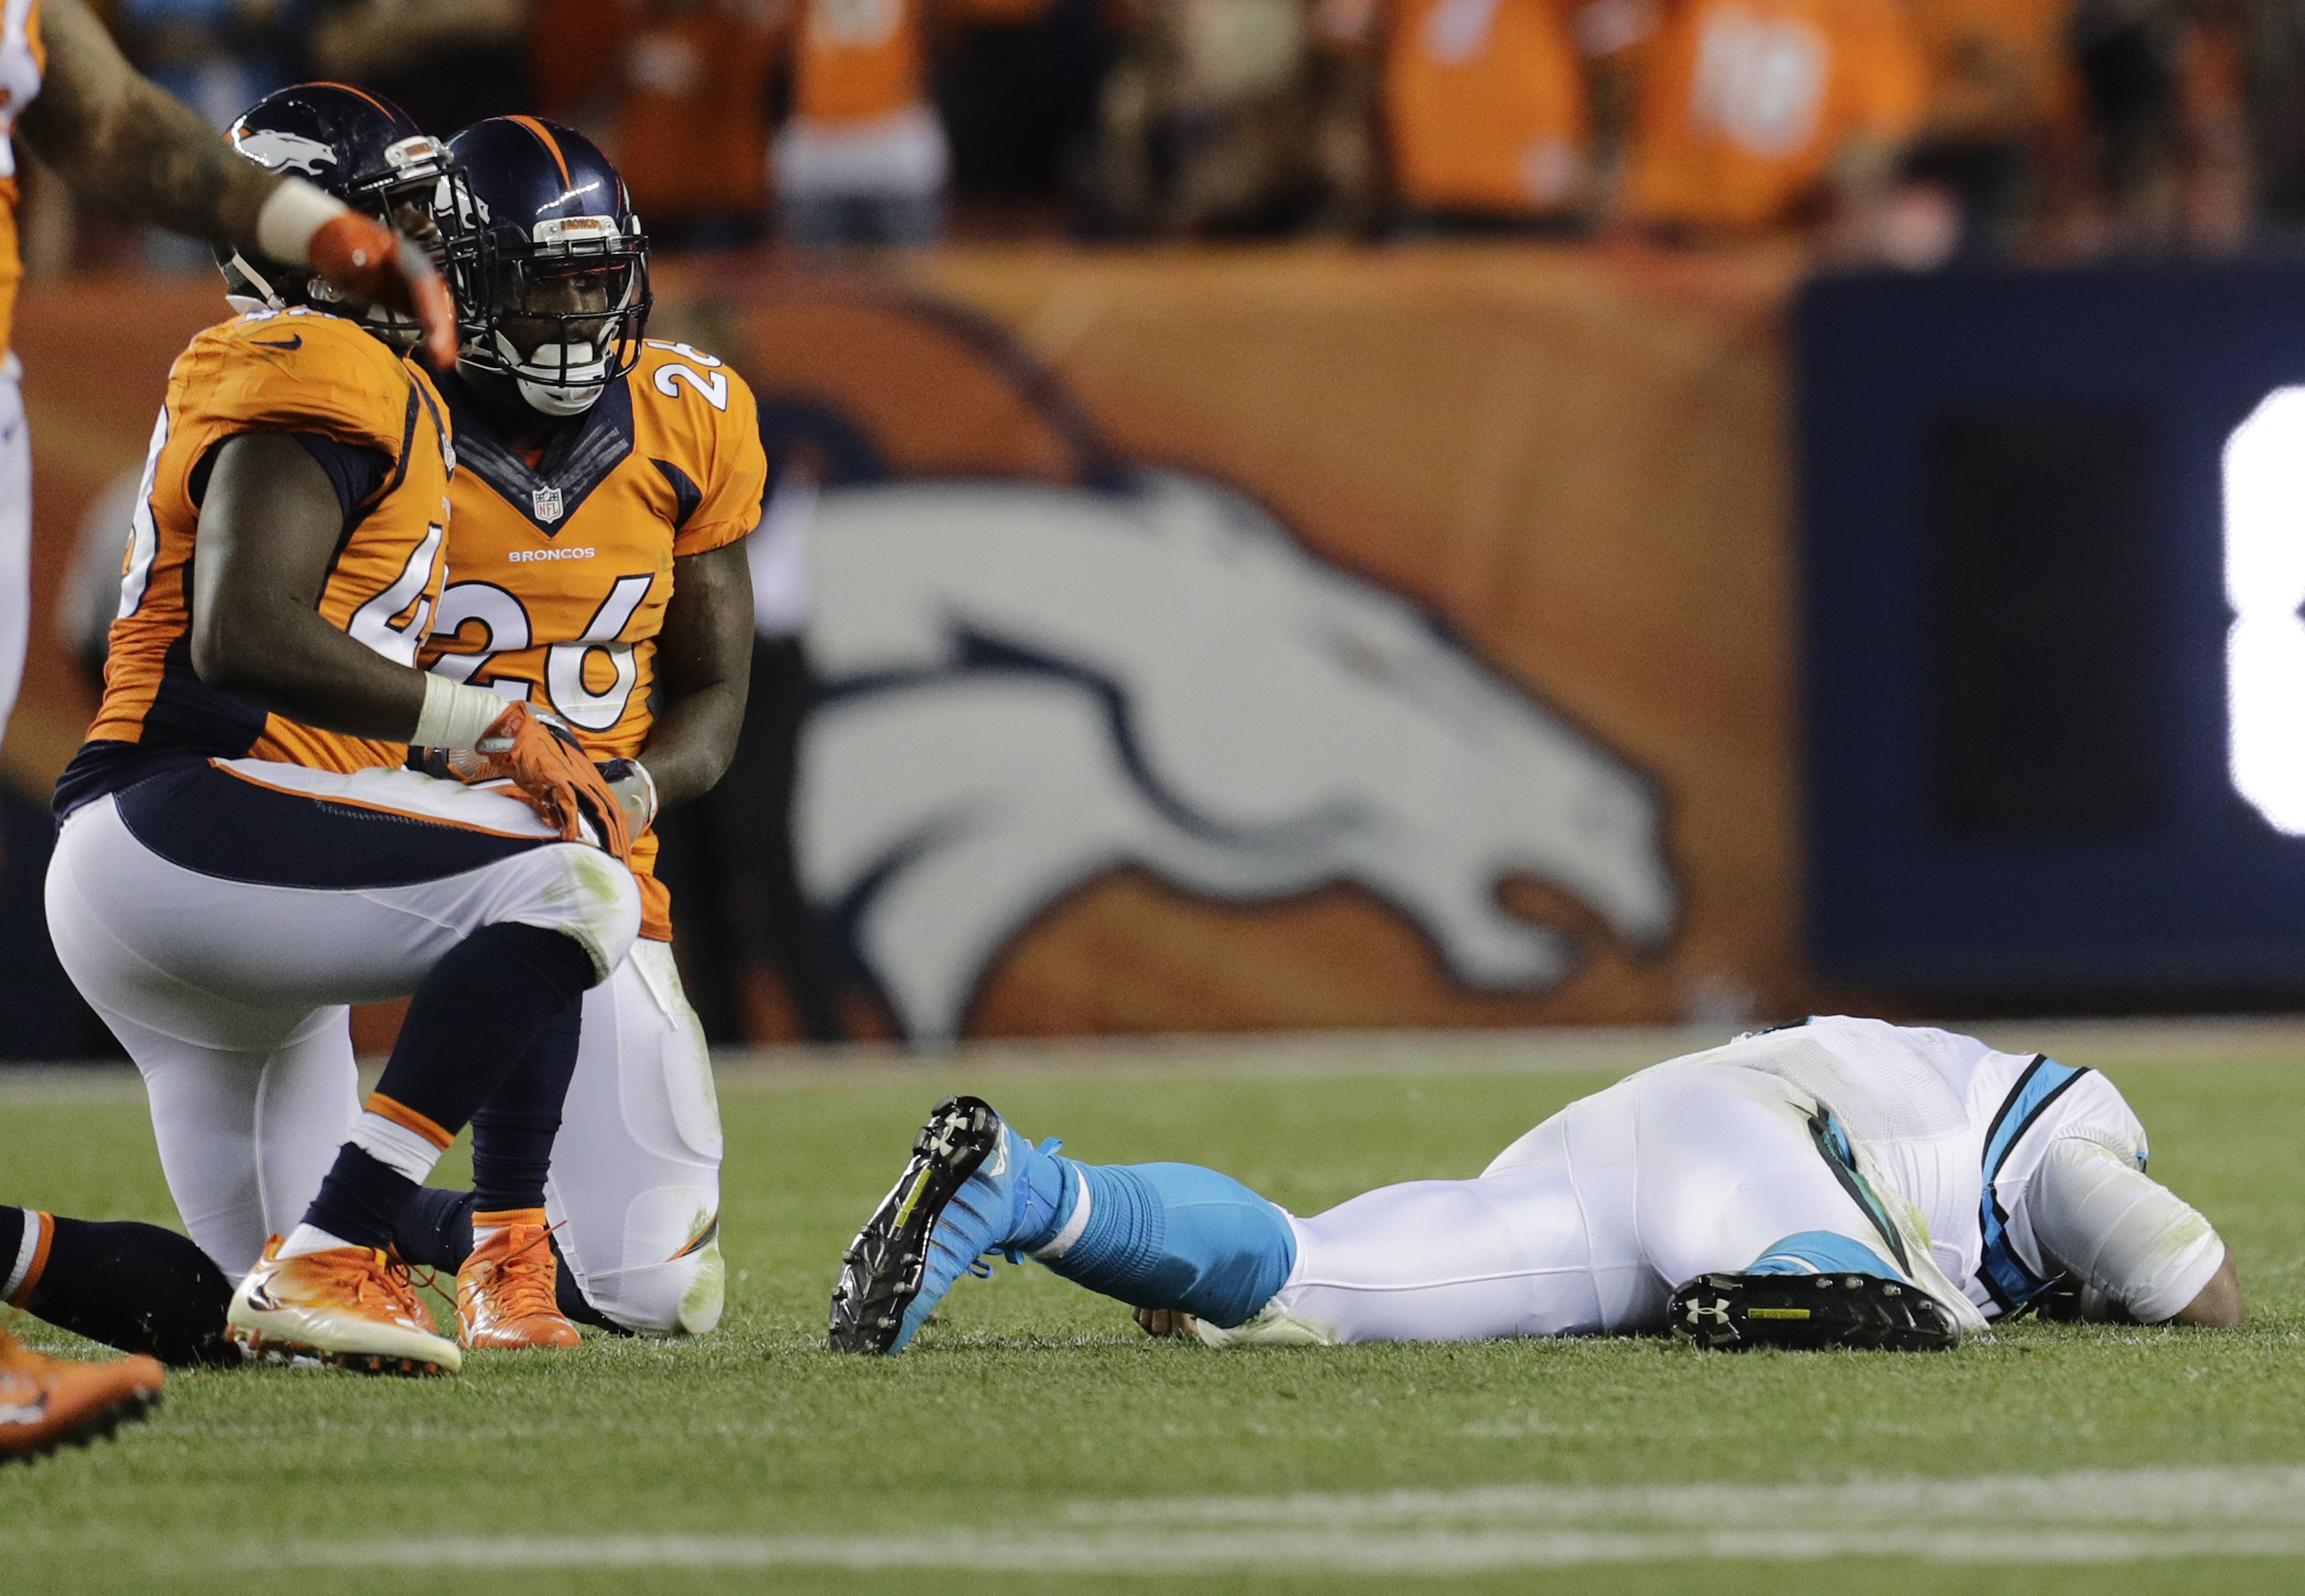 Carolina Panthers quarterback Cam Newton (1) lies on the turf after a roughing the passer penalty on Denver Broncos free safety Darian Stewart (26) during the second half of an NFL football game, Thursday, Sept. 8, 2016, in Denver. The Broncos won 21-20.